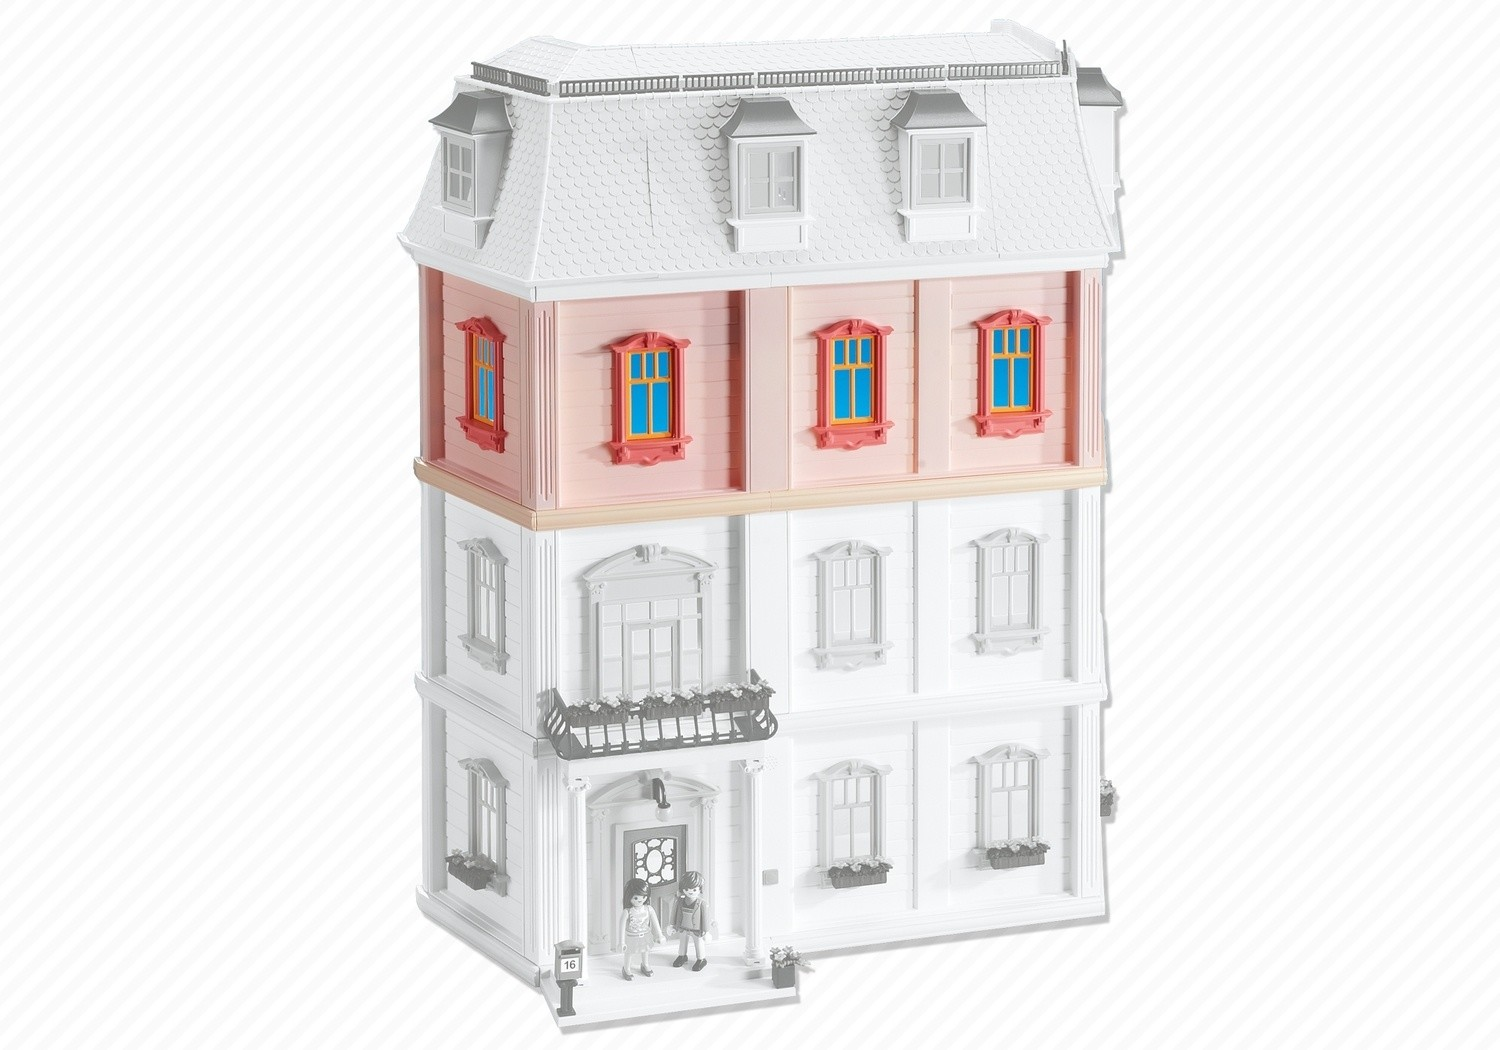 Dollhouse Playmobil Playmobil Deluxe Dollhouse Playset 5303 Christmas Gifts 2018